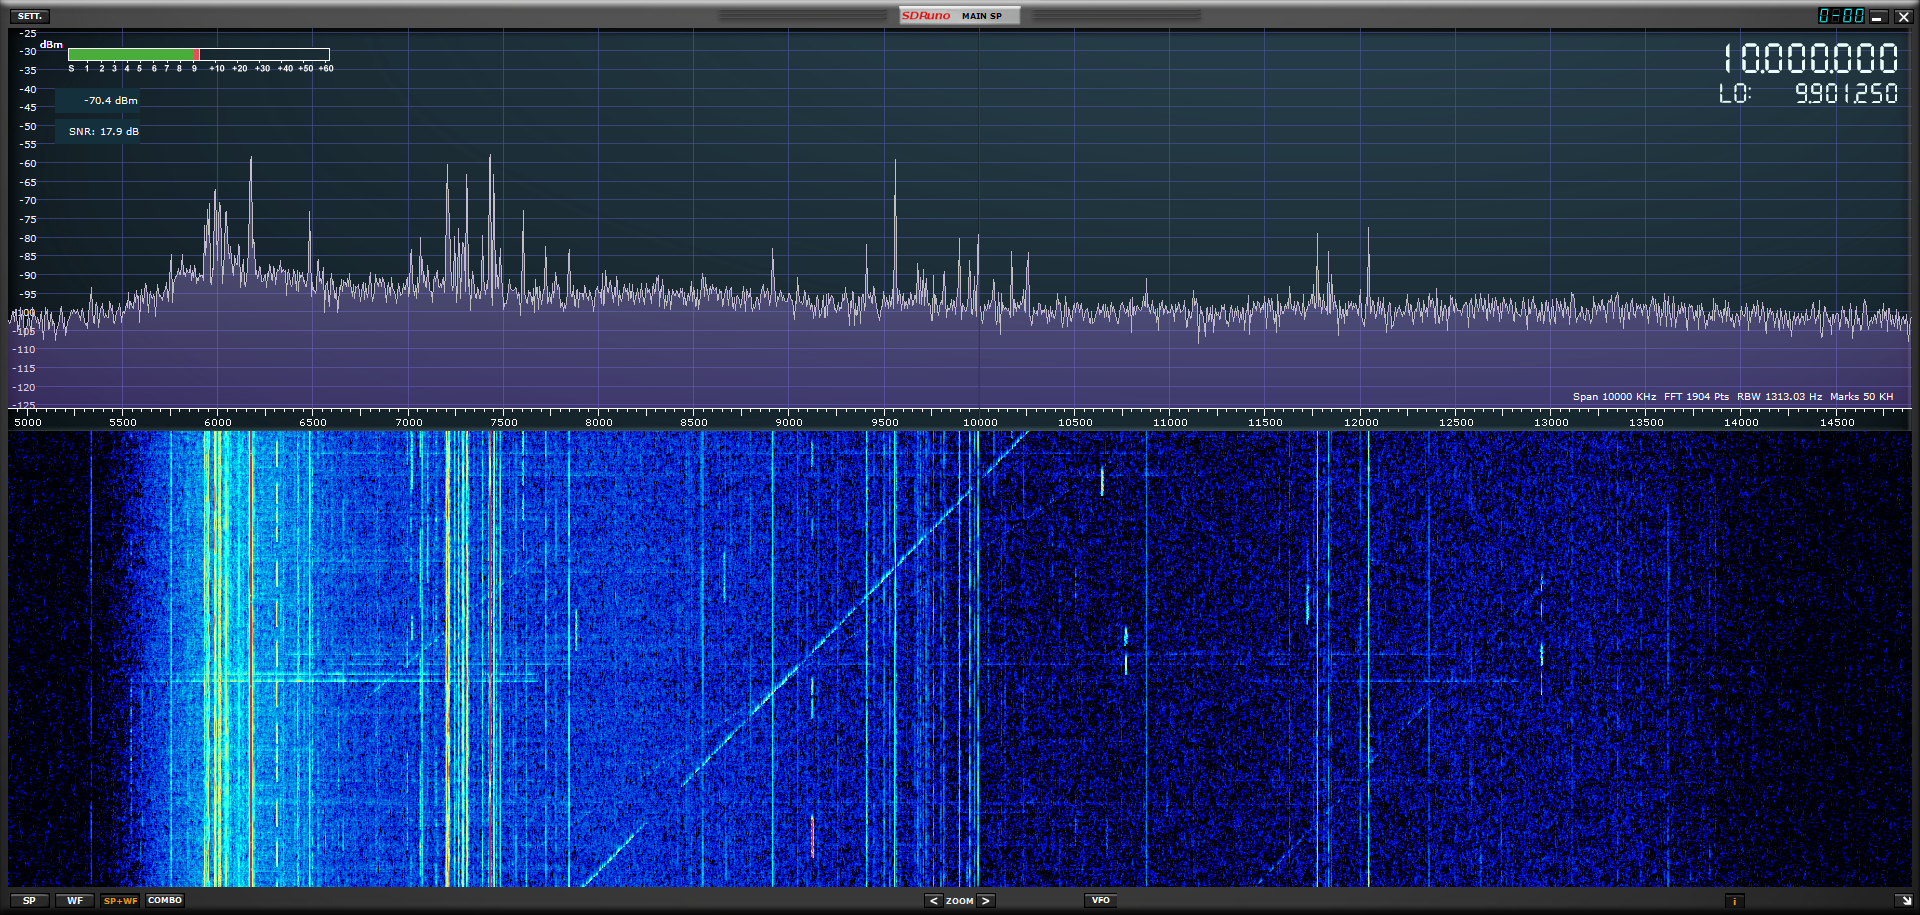 Noise On Hf Bands